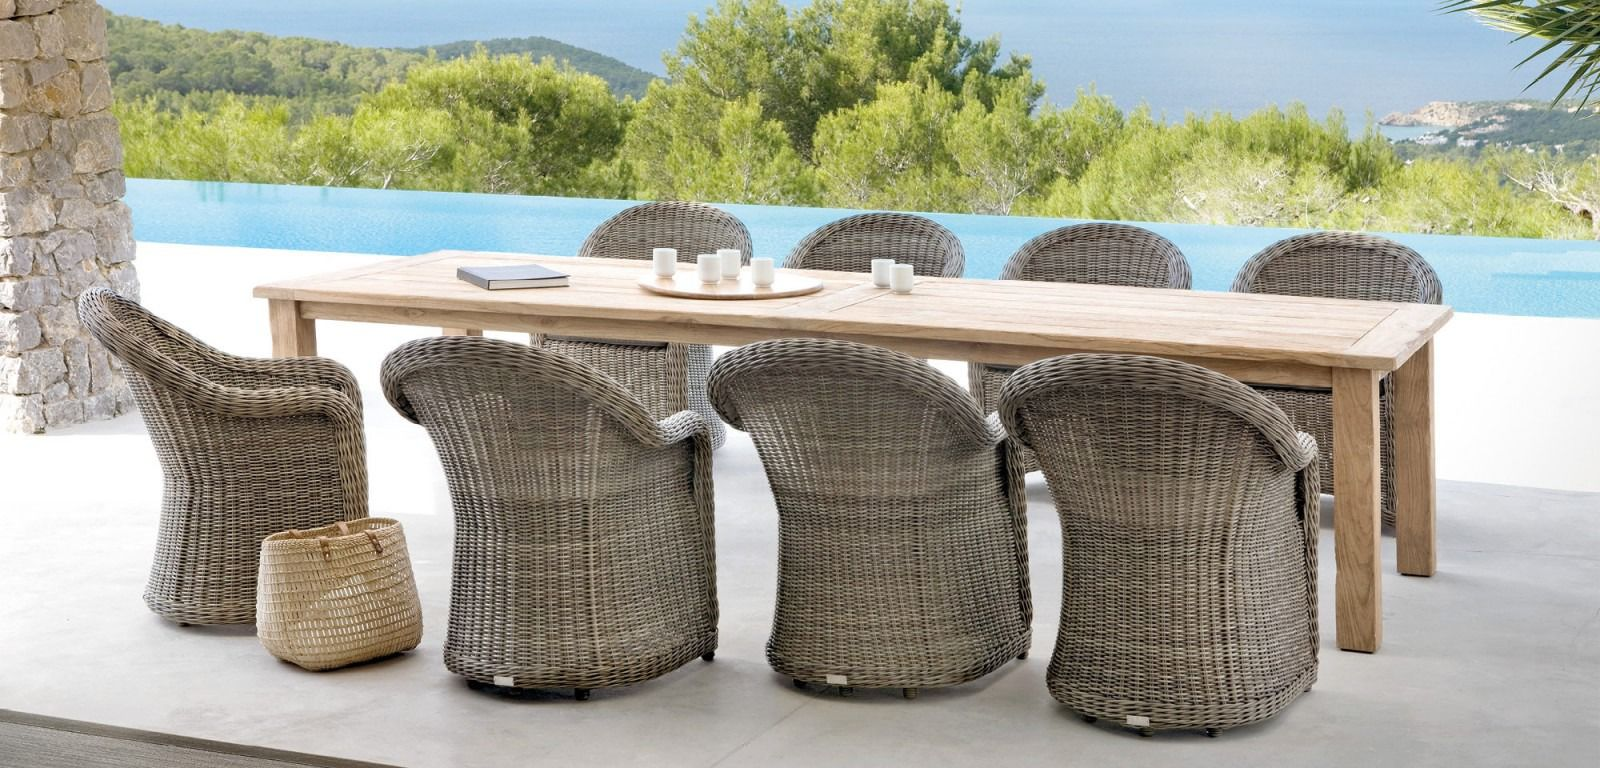 mobilier d 39 ext rieur haut de gamme c te d 39 azur d coration cannes mougins mobilier outdoor. Black Bedroom Furniture Sets. Home Design Ideas